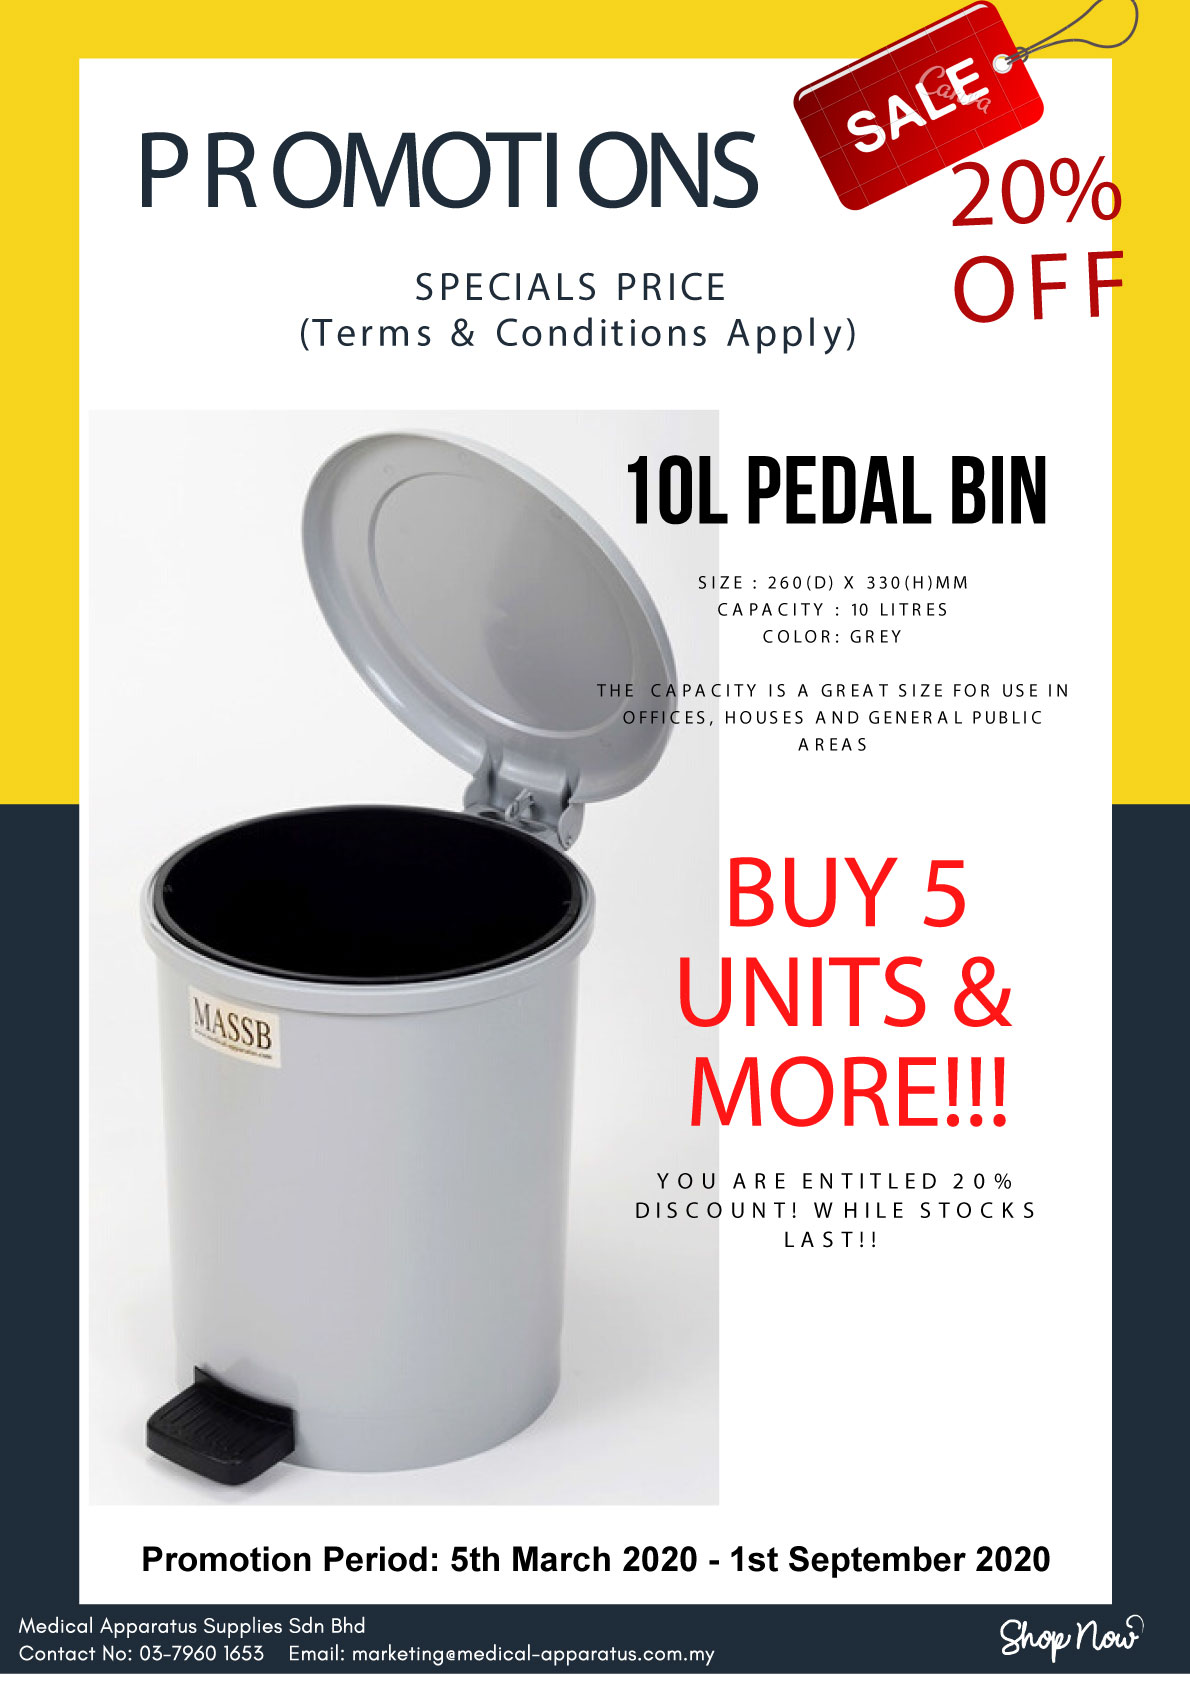 Medical Apparatus 2020 10L Pedal Bin Promotion